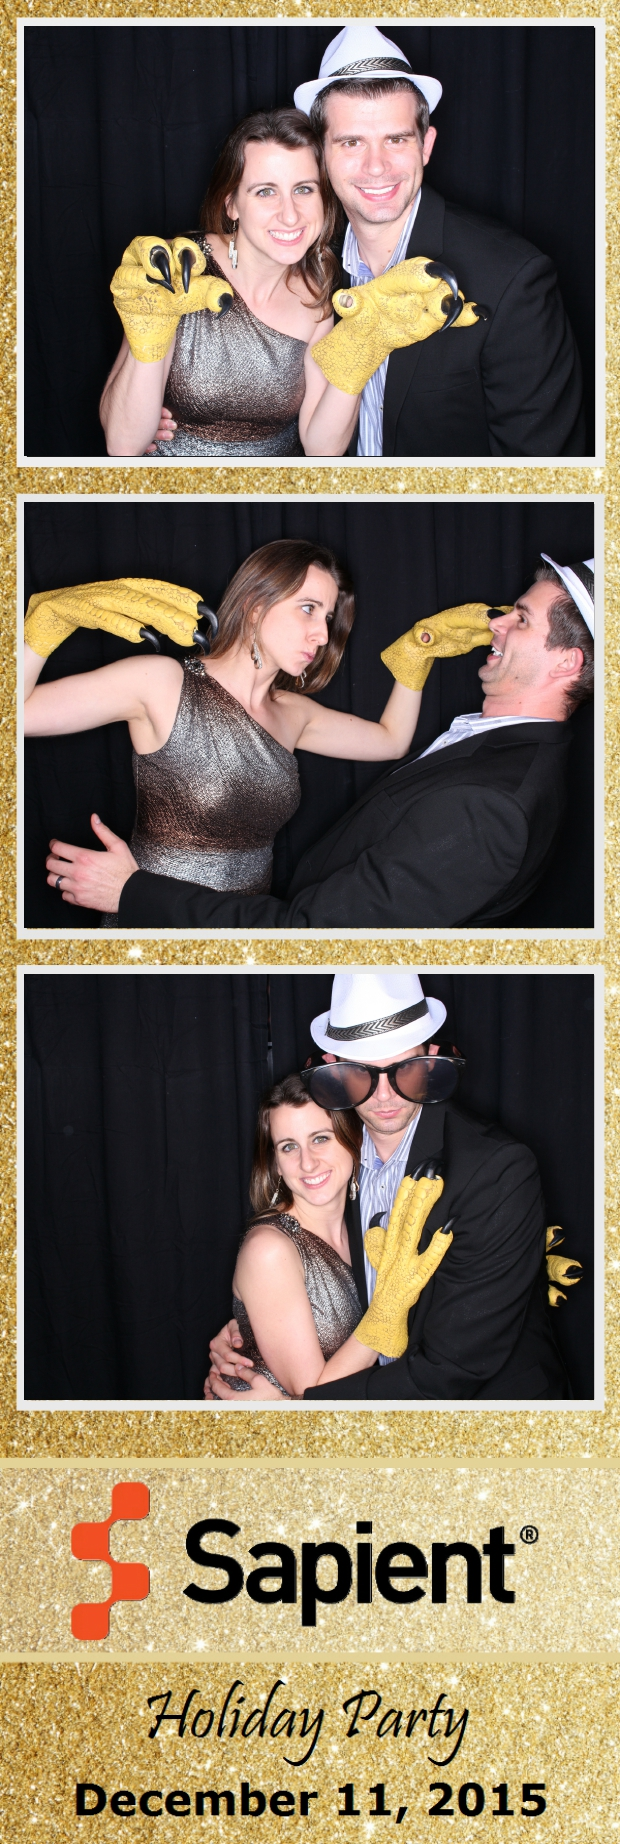 Guest House Events Photo Booth Sapient Holiday Party (15).jpg